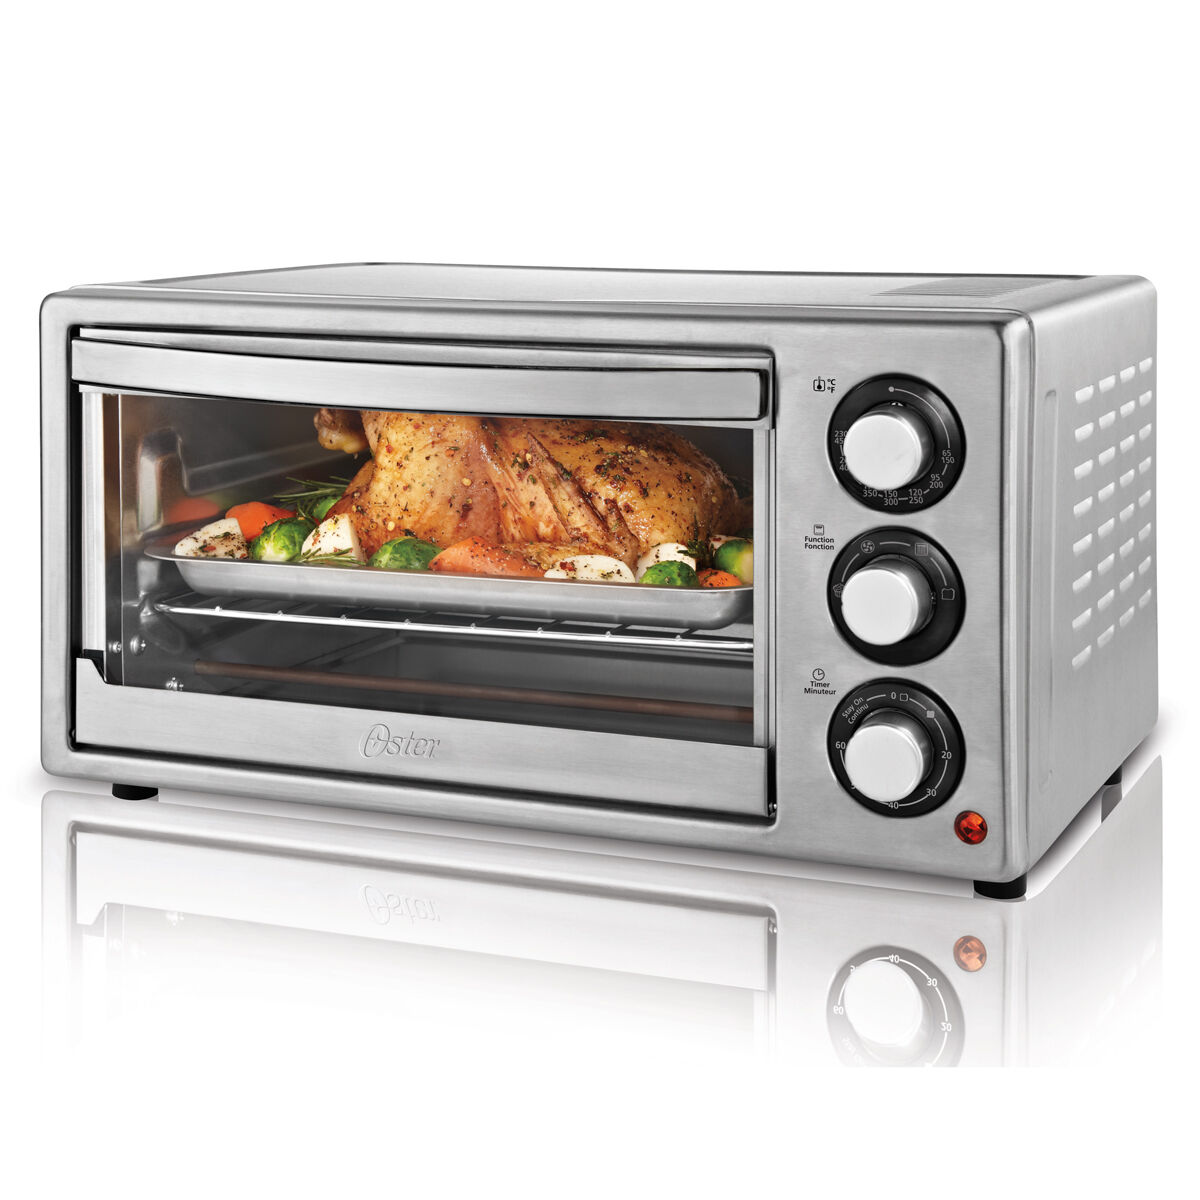 Best Countertop Convection Oven Stainless Steel Baking Cooking Small New